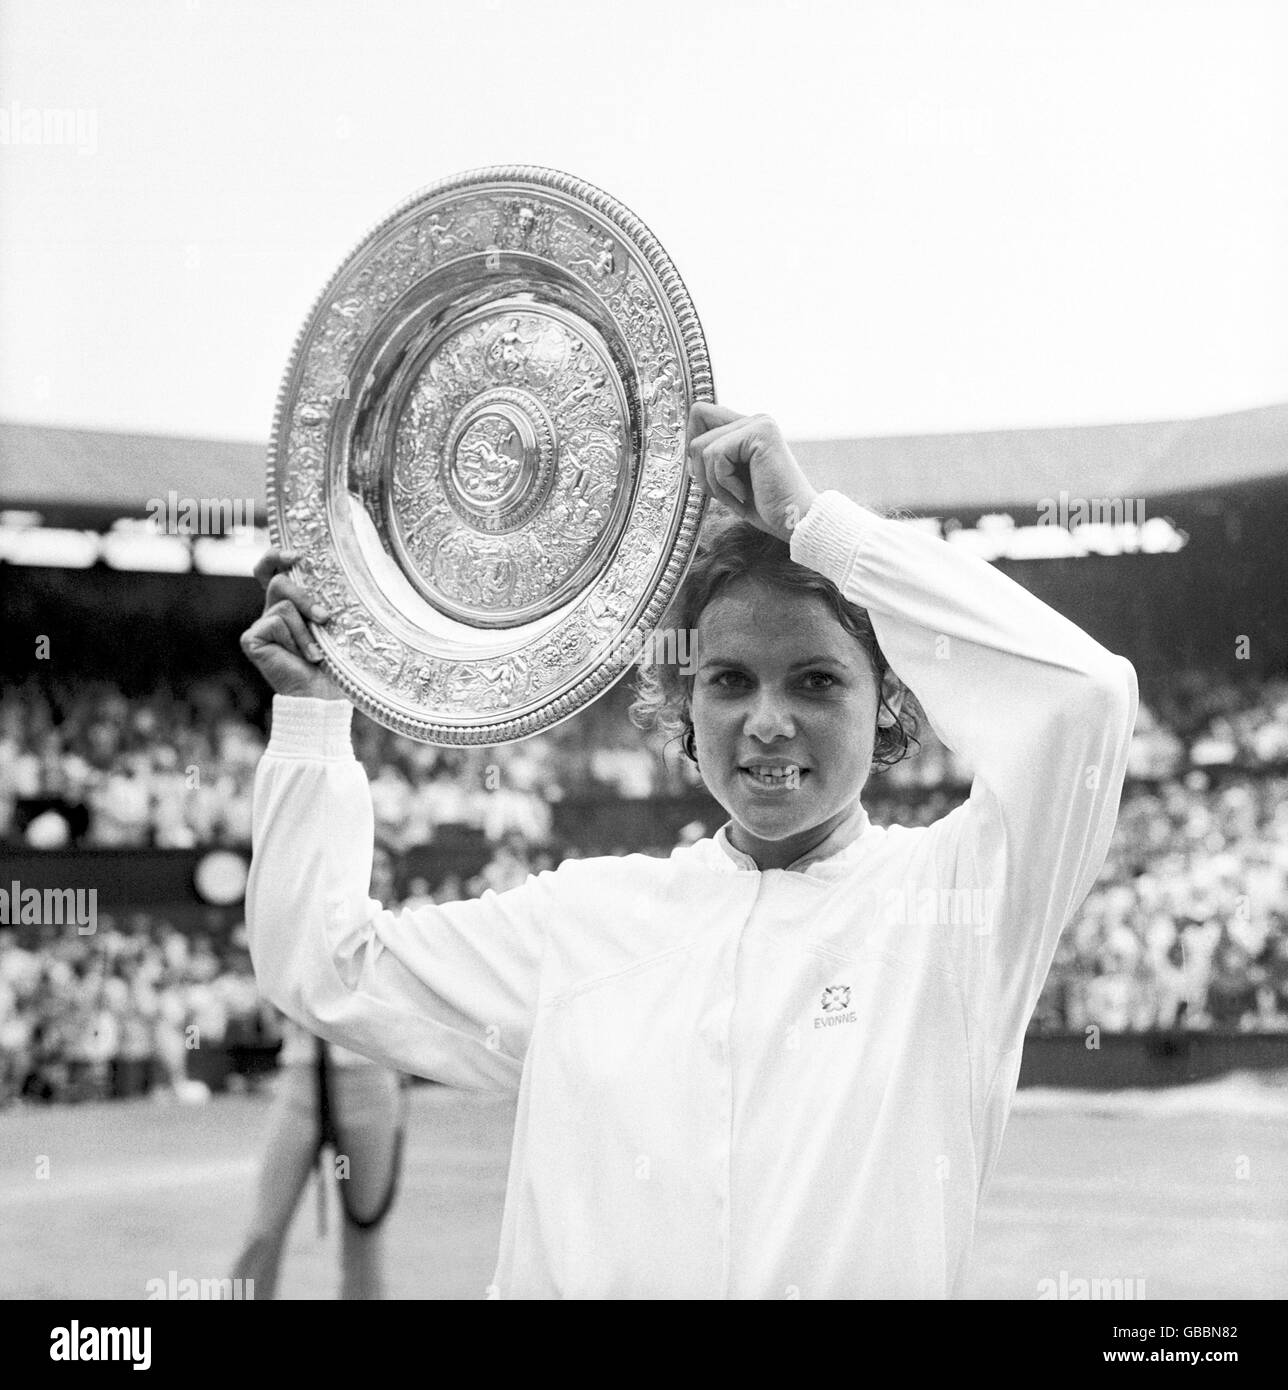 foto Evonne Goolagong 7 Grand Slam singles titles